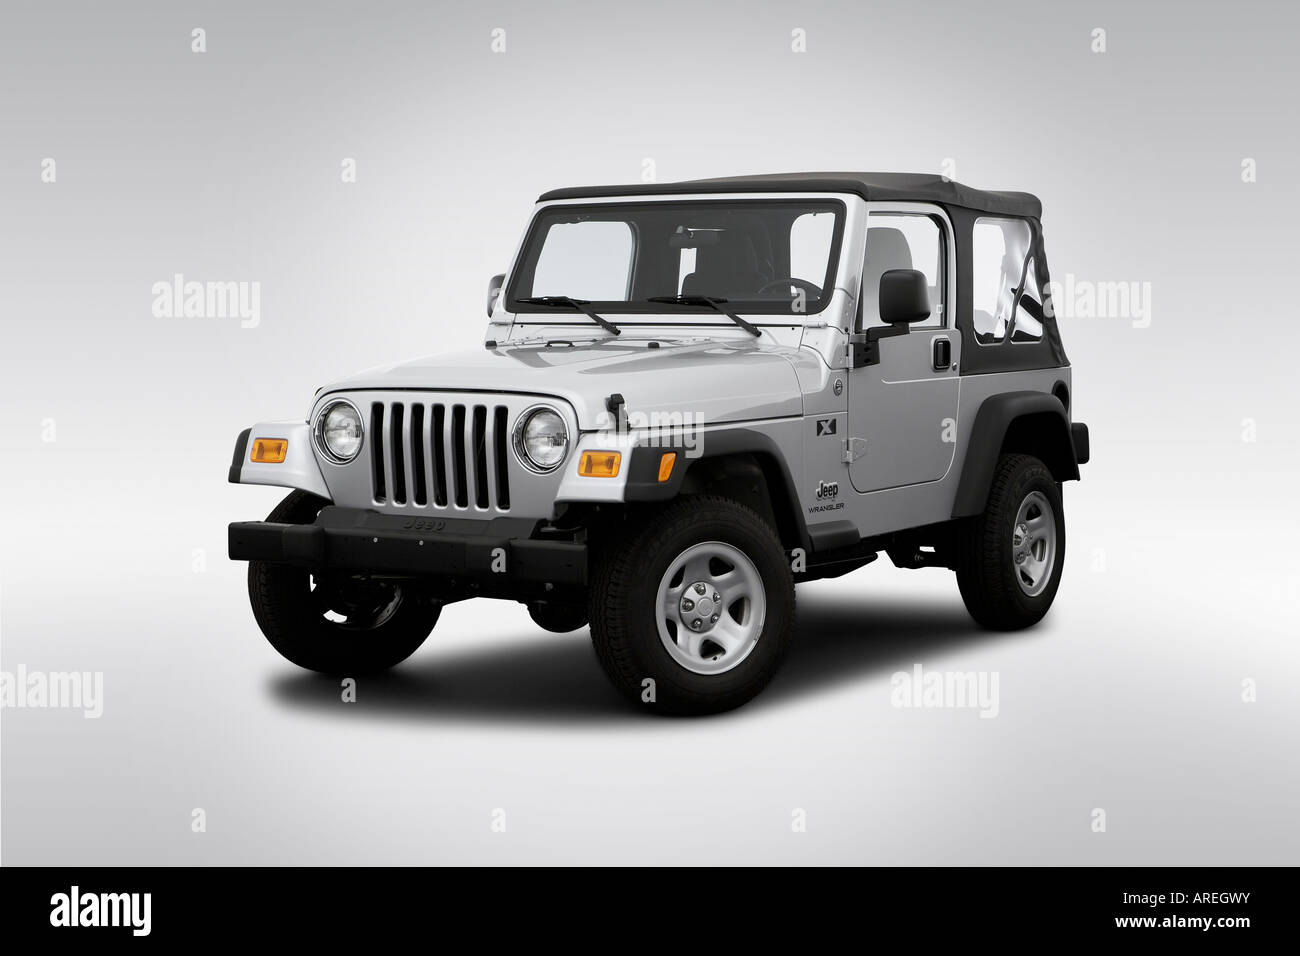 2006 Jeep Wrangler X in Silver - Front angle view